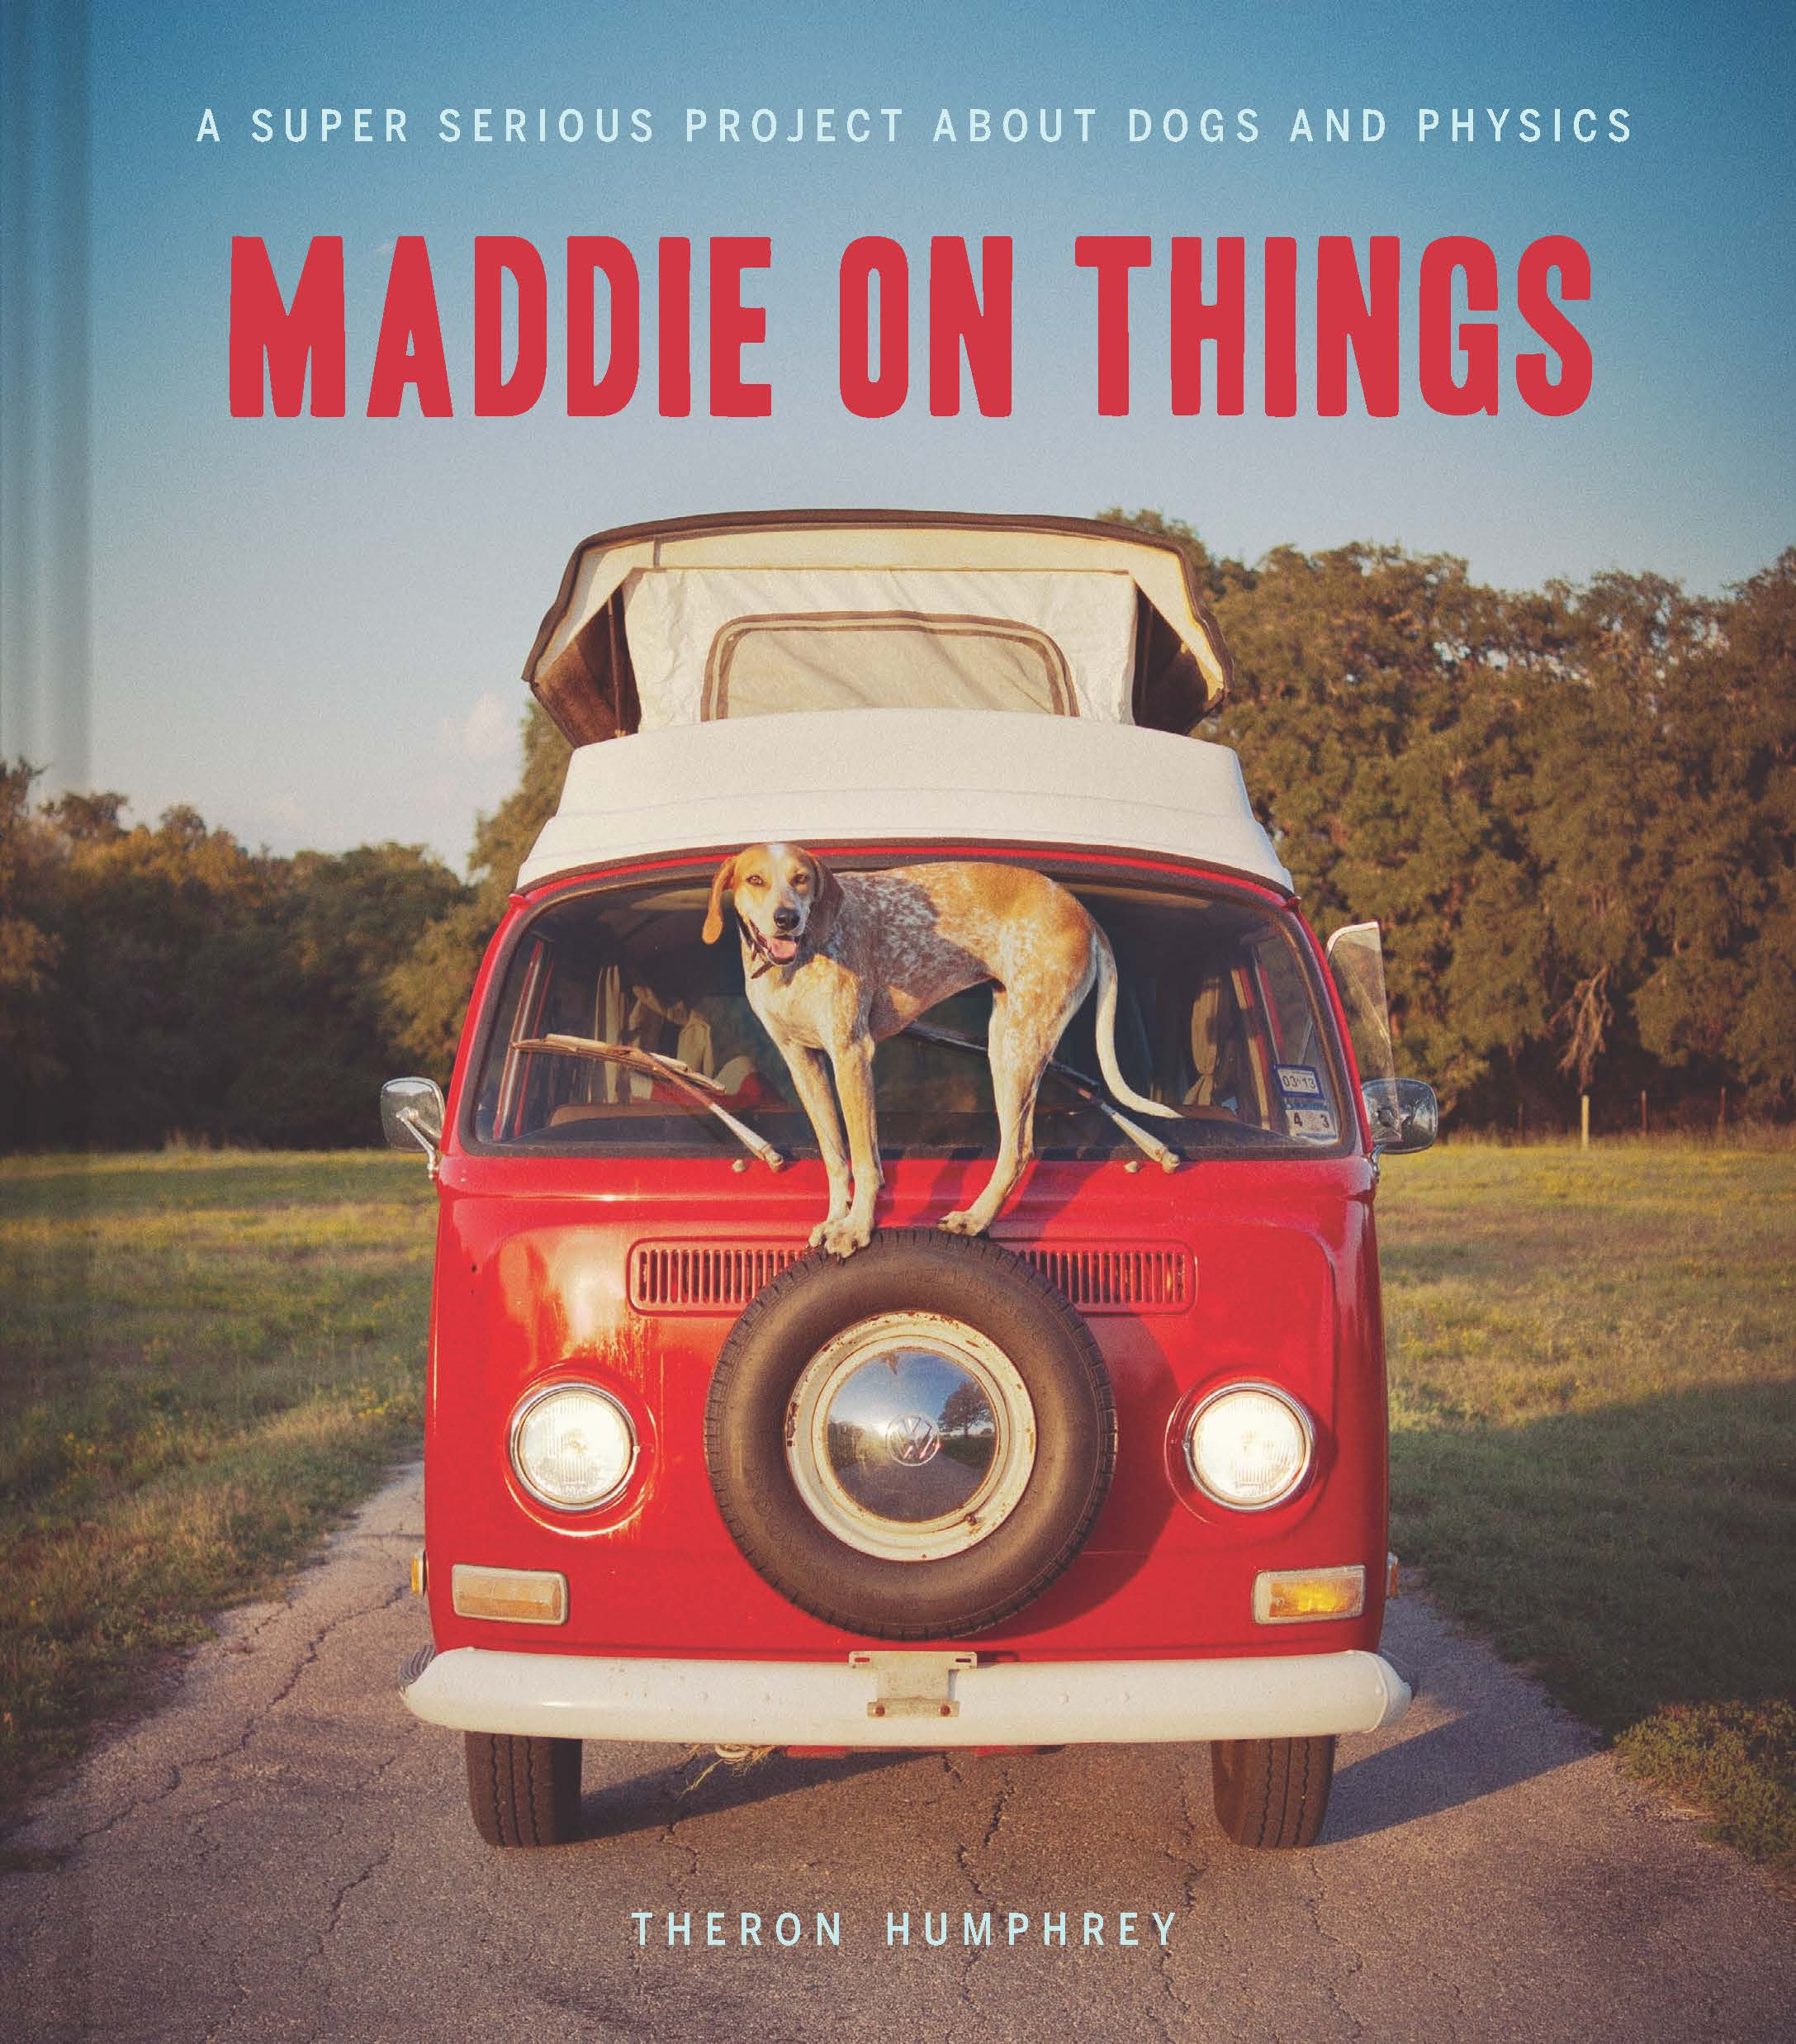 Book Launch: Maddie on Things by Theron Humphrey (and Maddie)